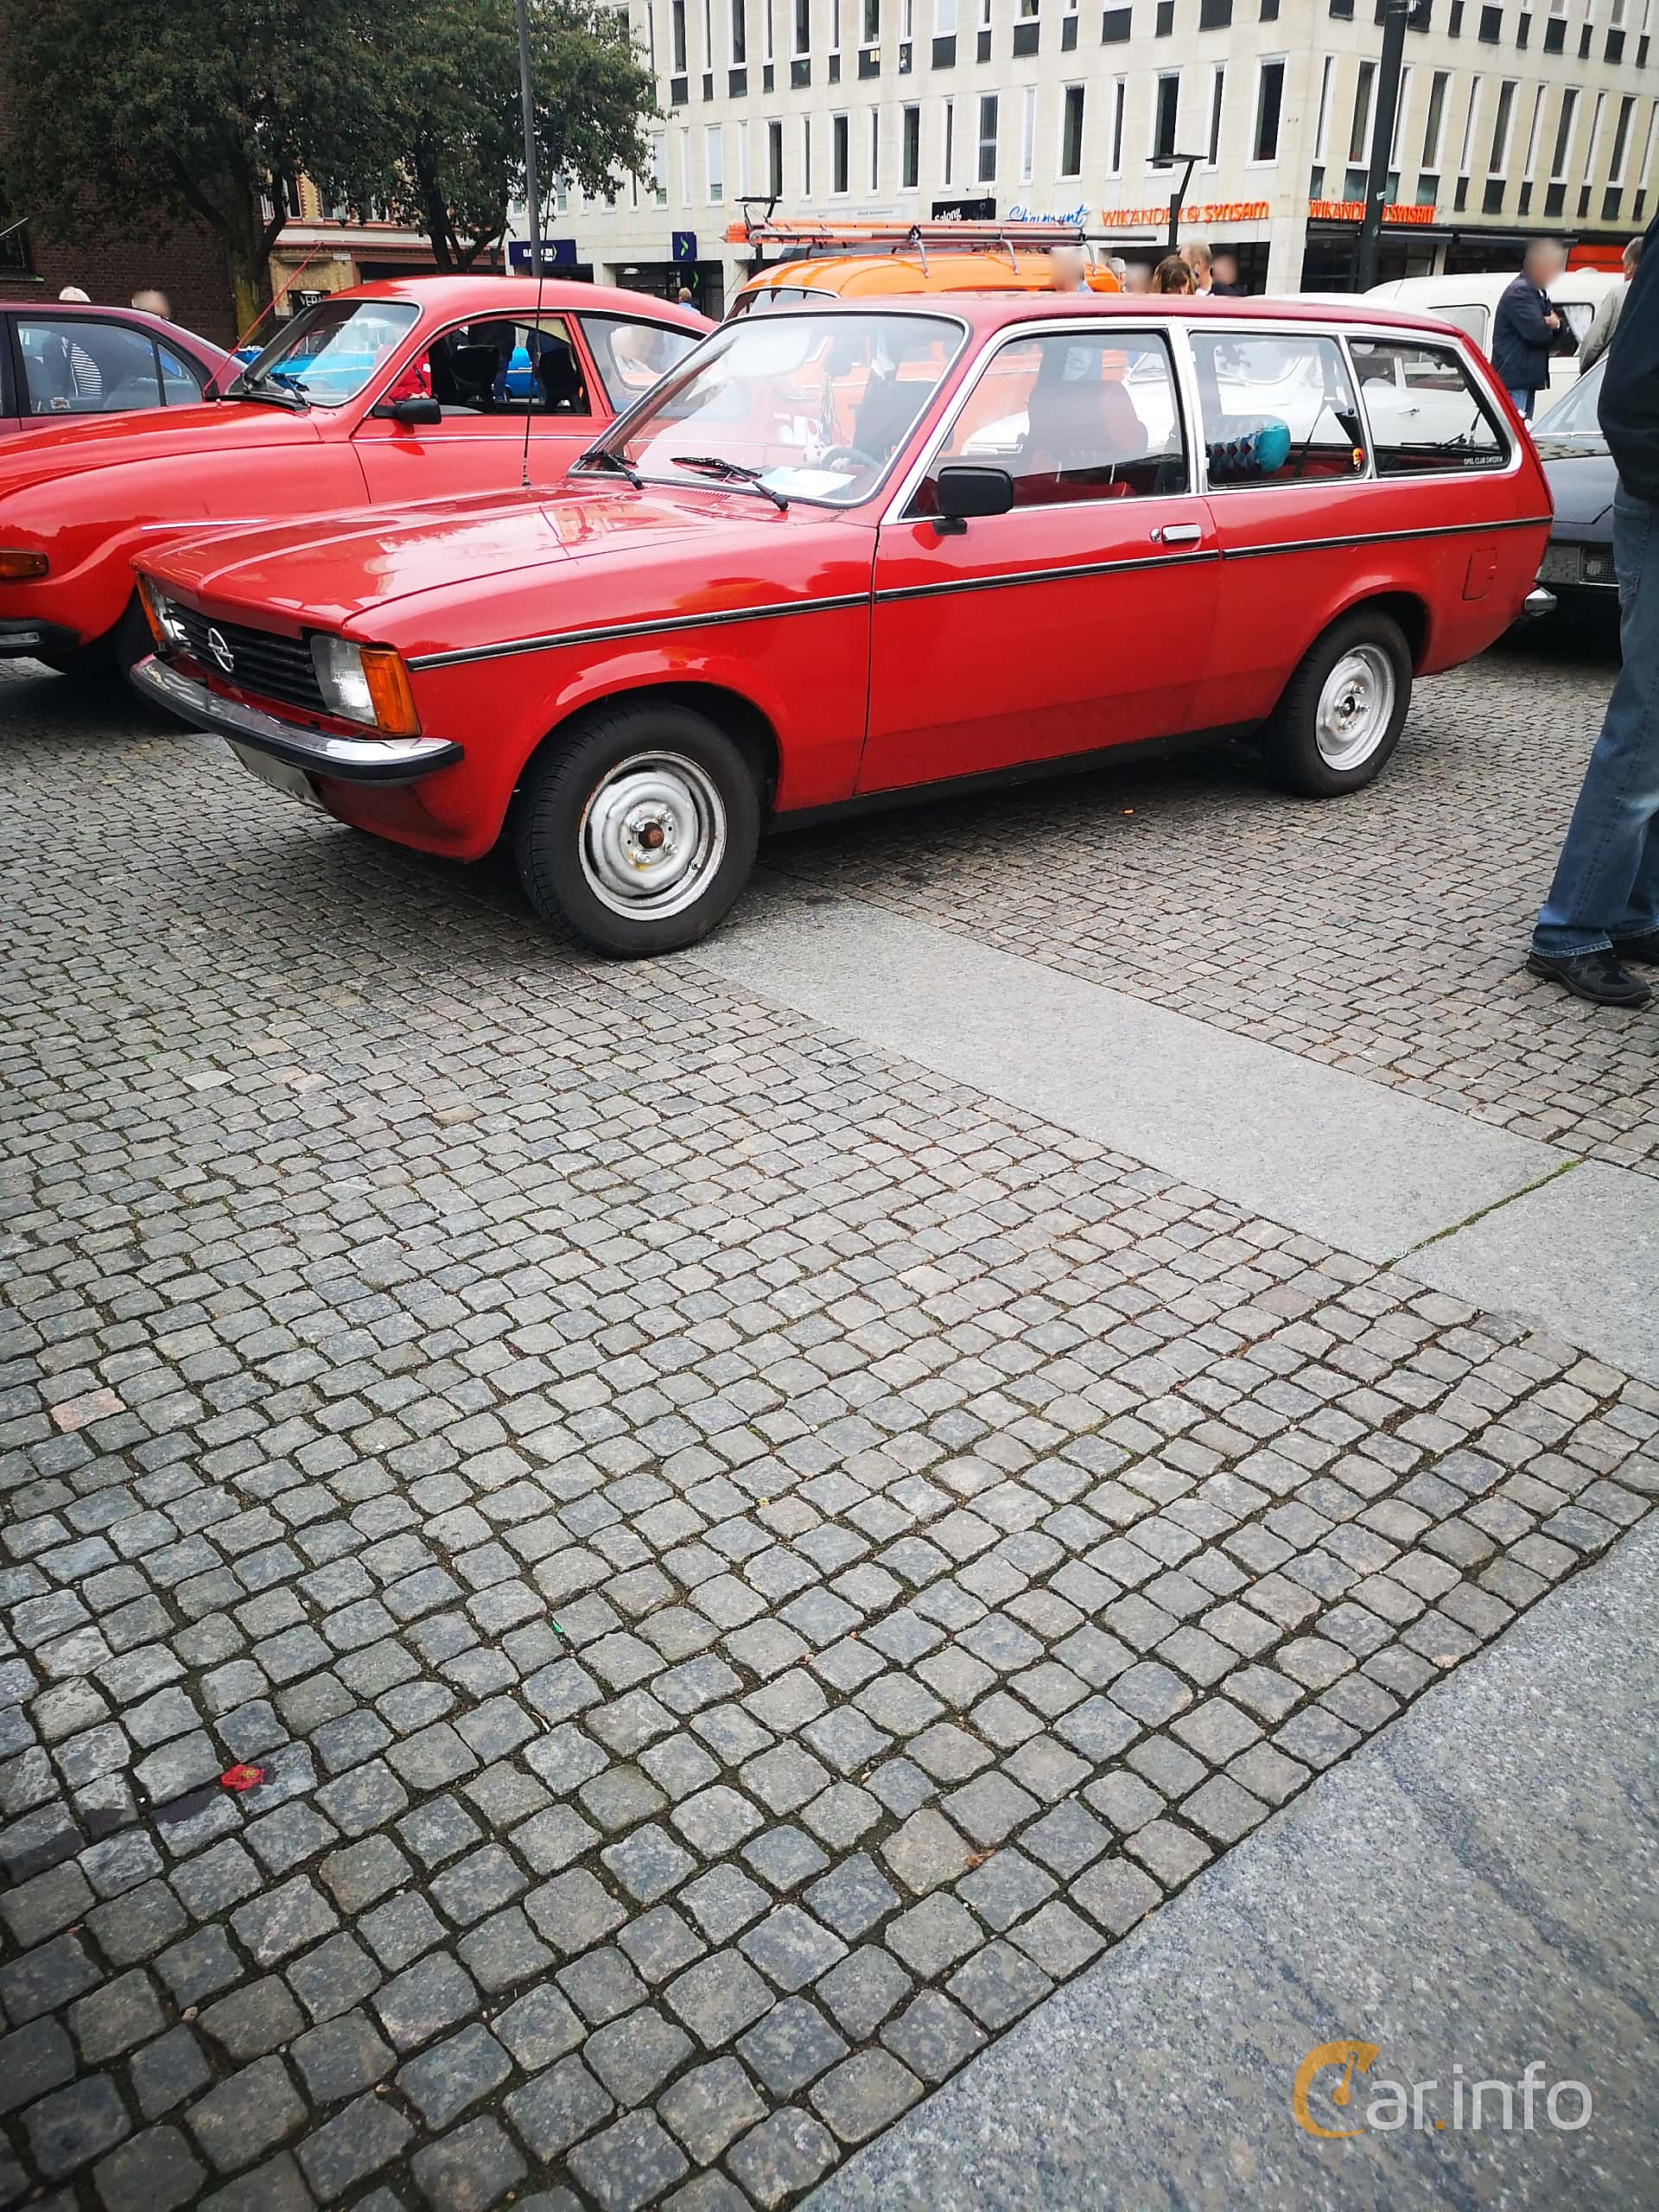 Opel Kadett 1200 S Caravan 1.2 Manual, 60hp, 1979